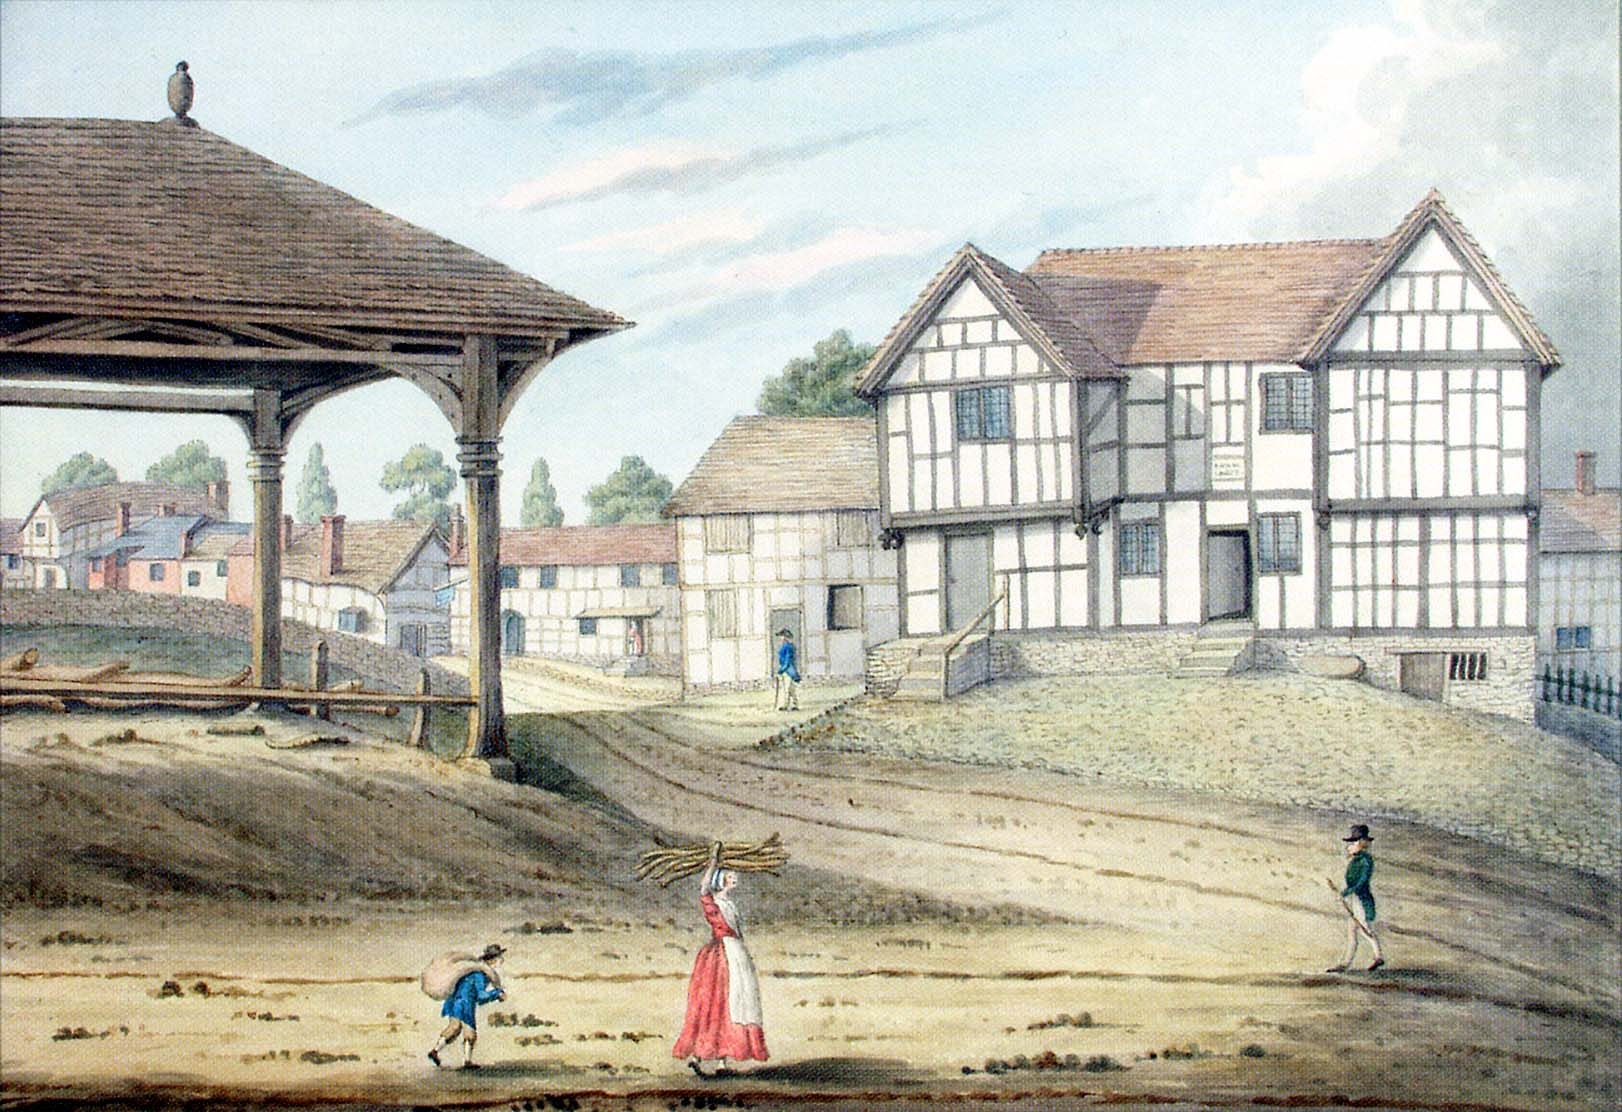 Pembridge 1842